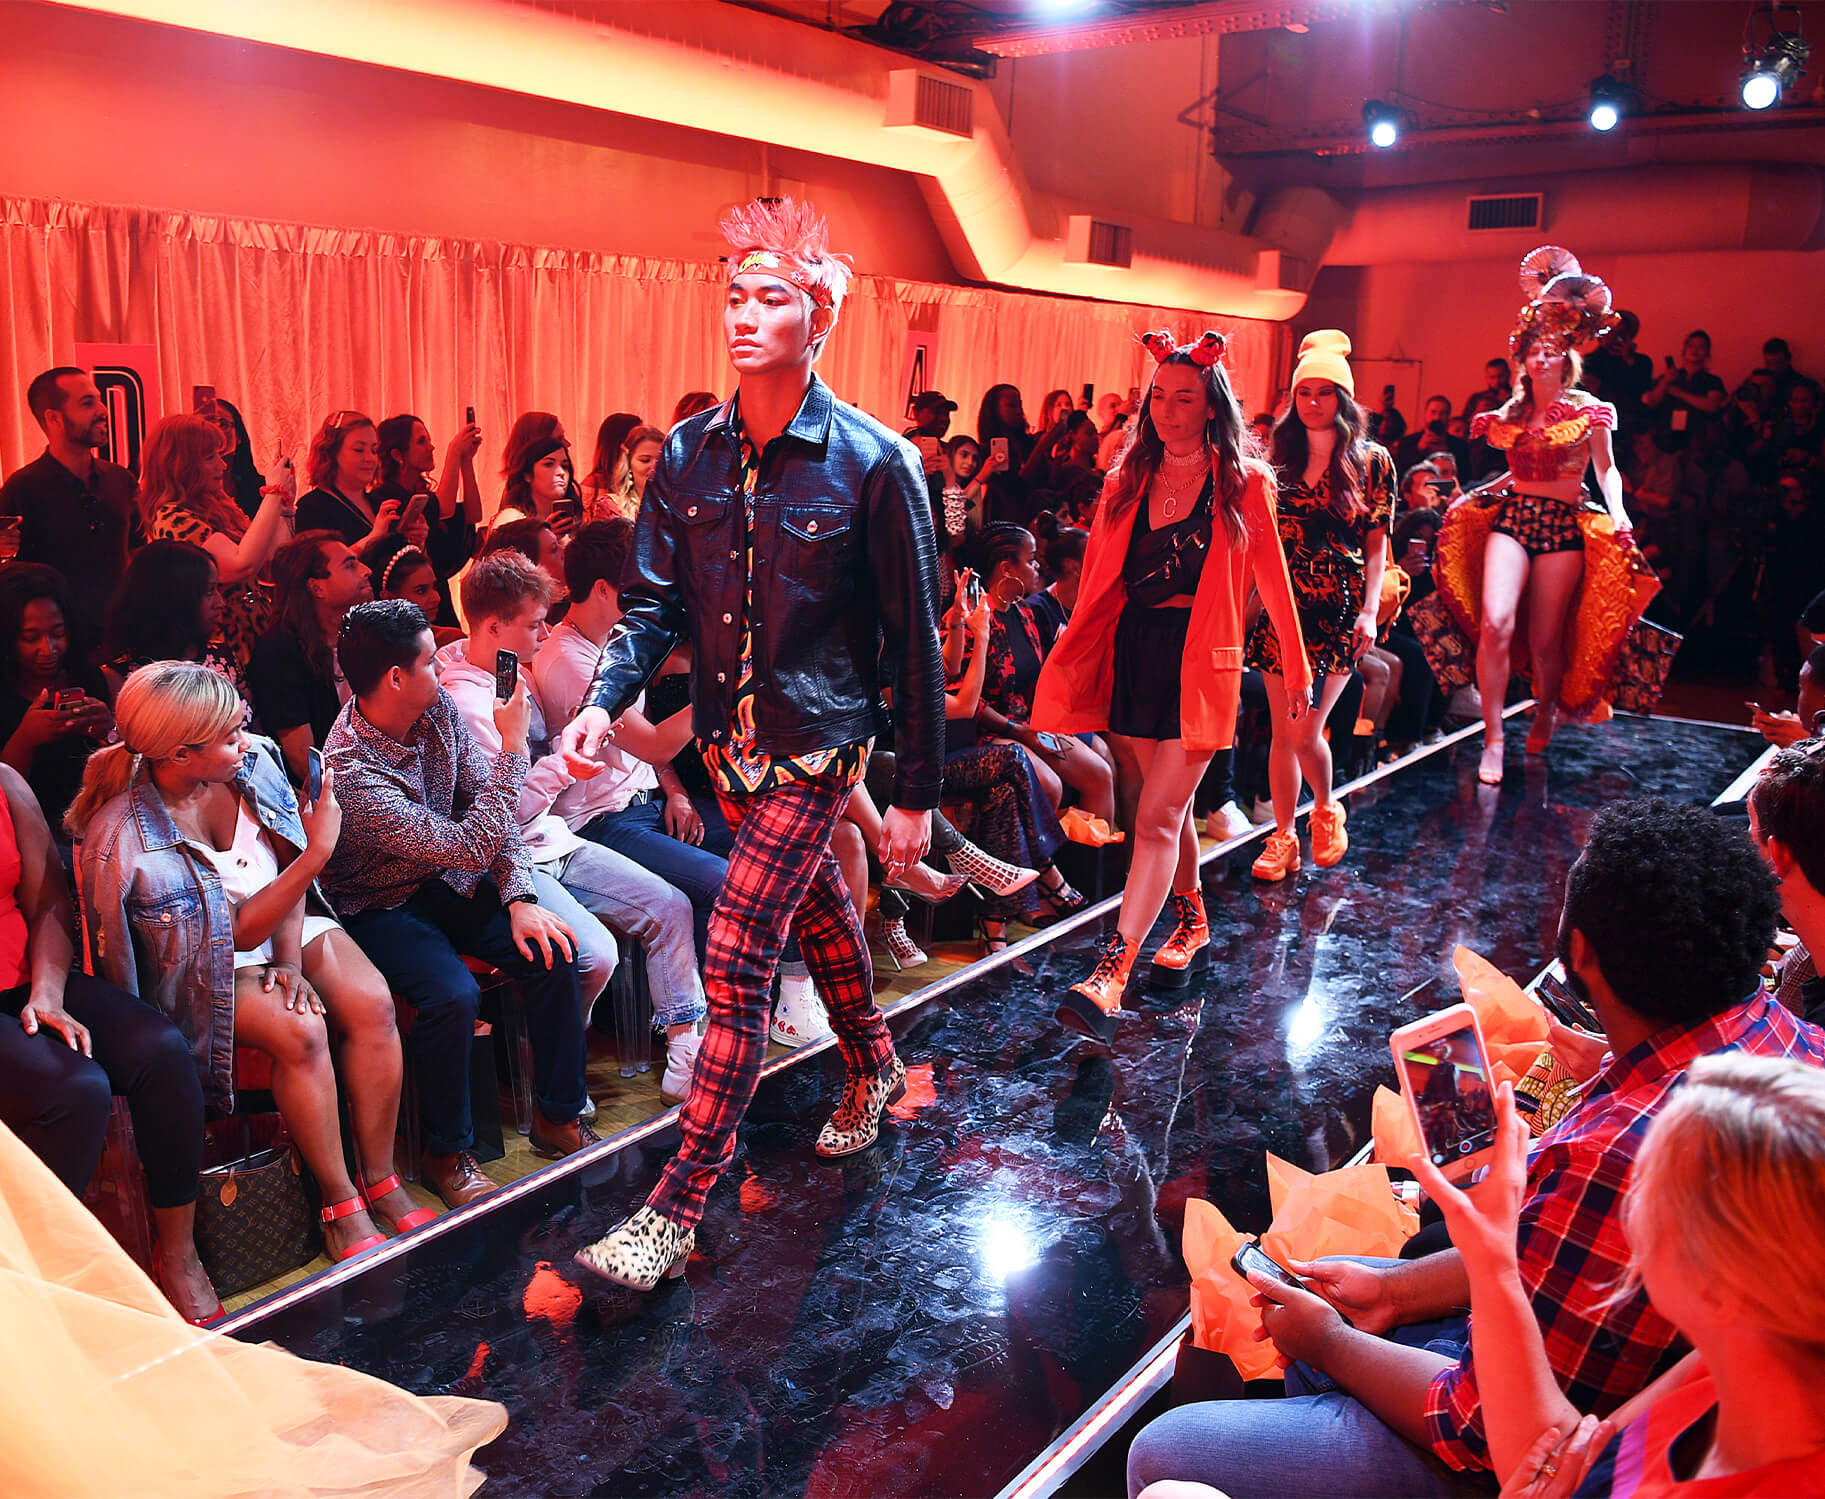 Cheetos and TMA turned up the heat during New York Fashion Week with the House of Flamin' Haute Runway Show and Style Bar. Cheetos partnered with The Marketing Arm to produce its first-ever runway show during the 2019 New York Fashion Week.